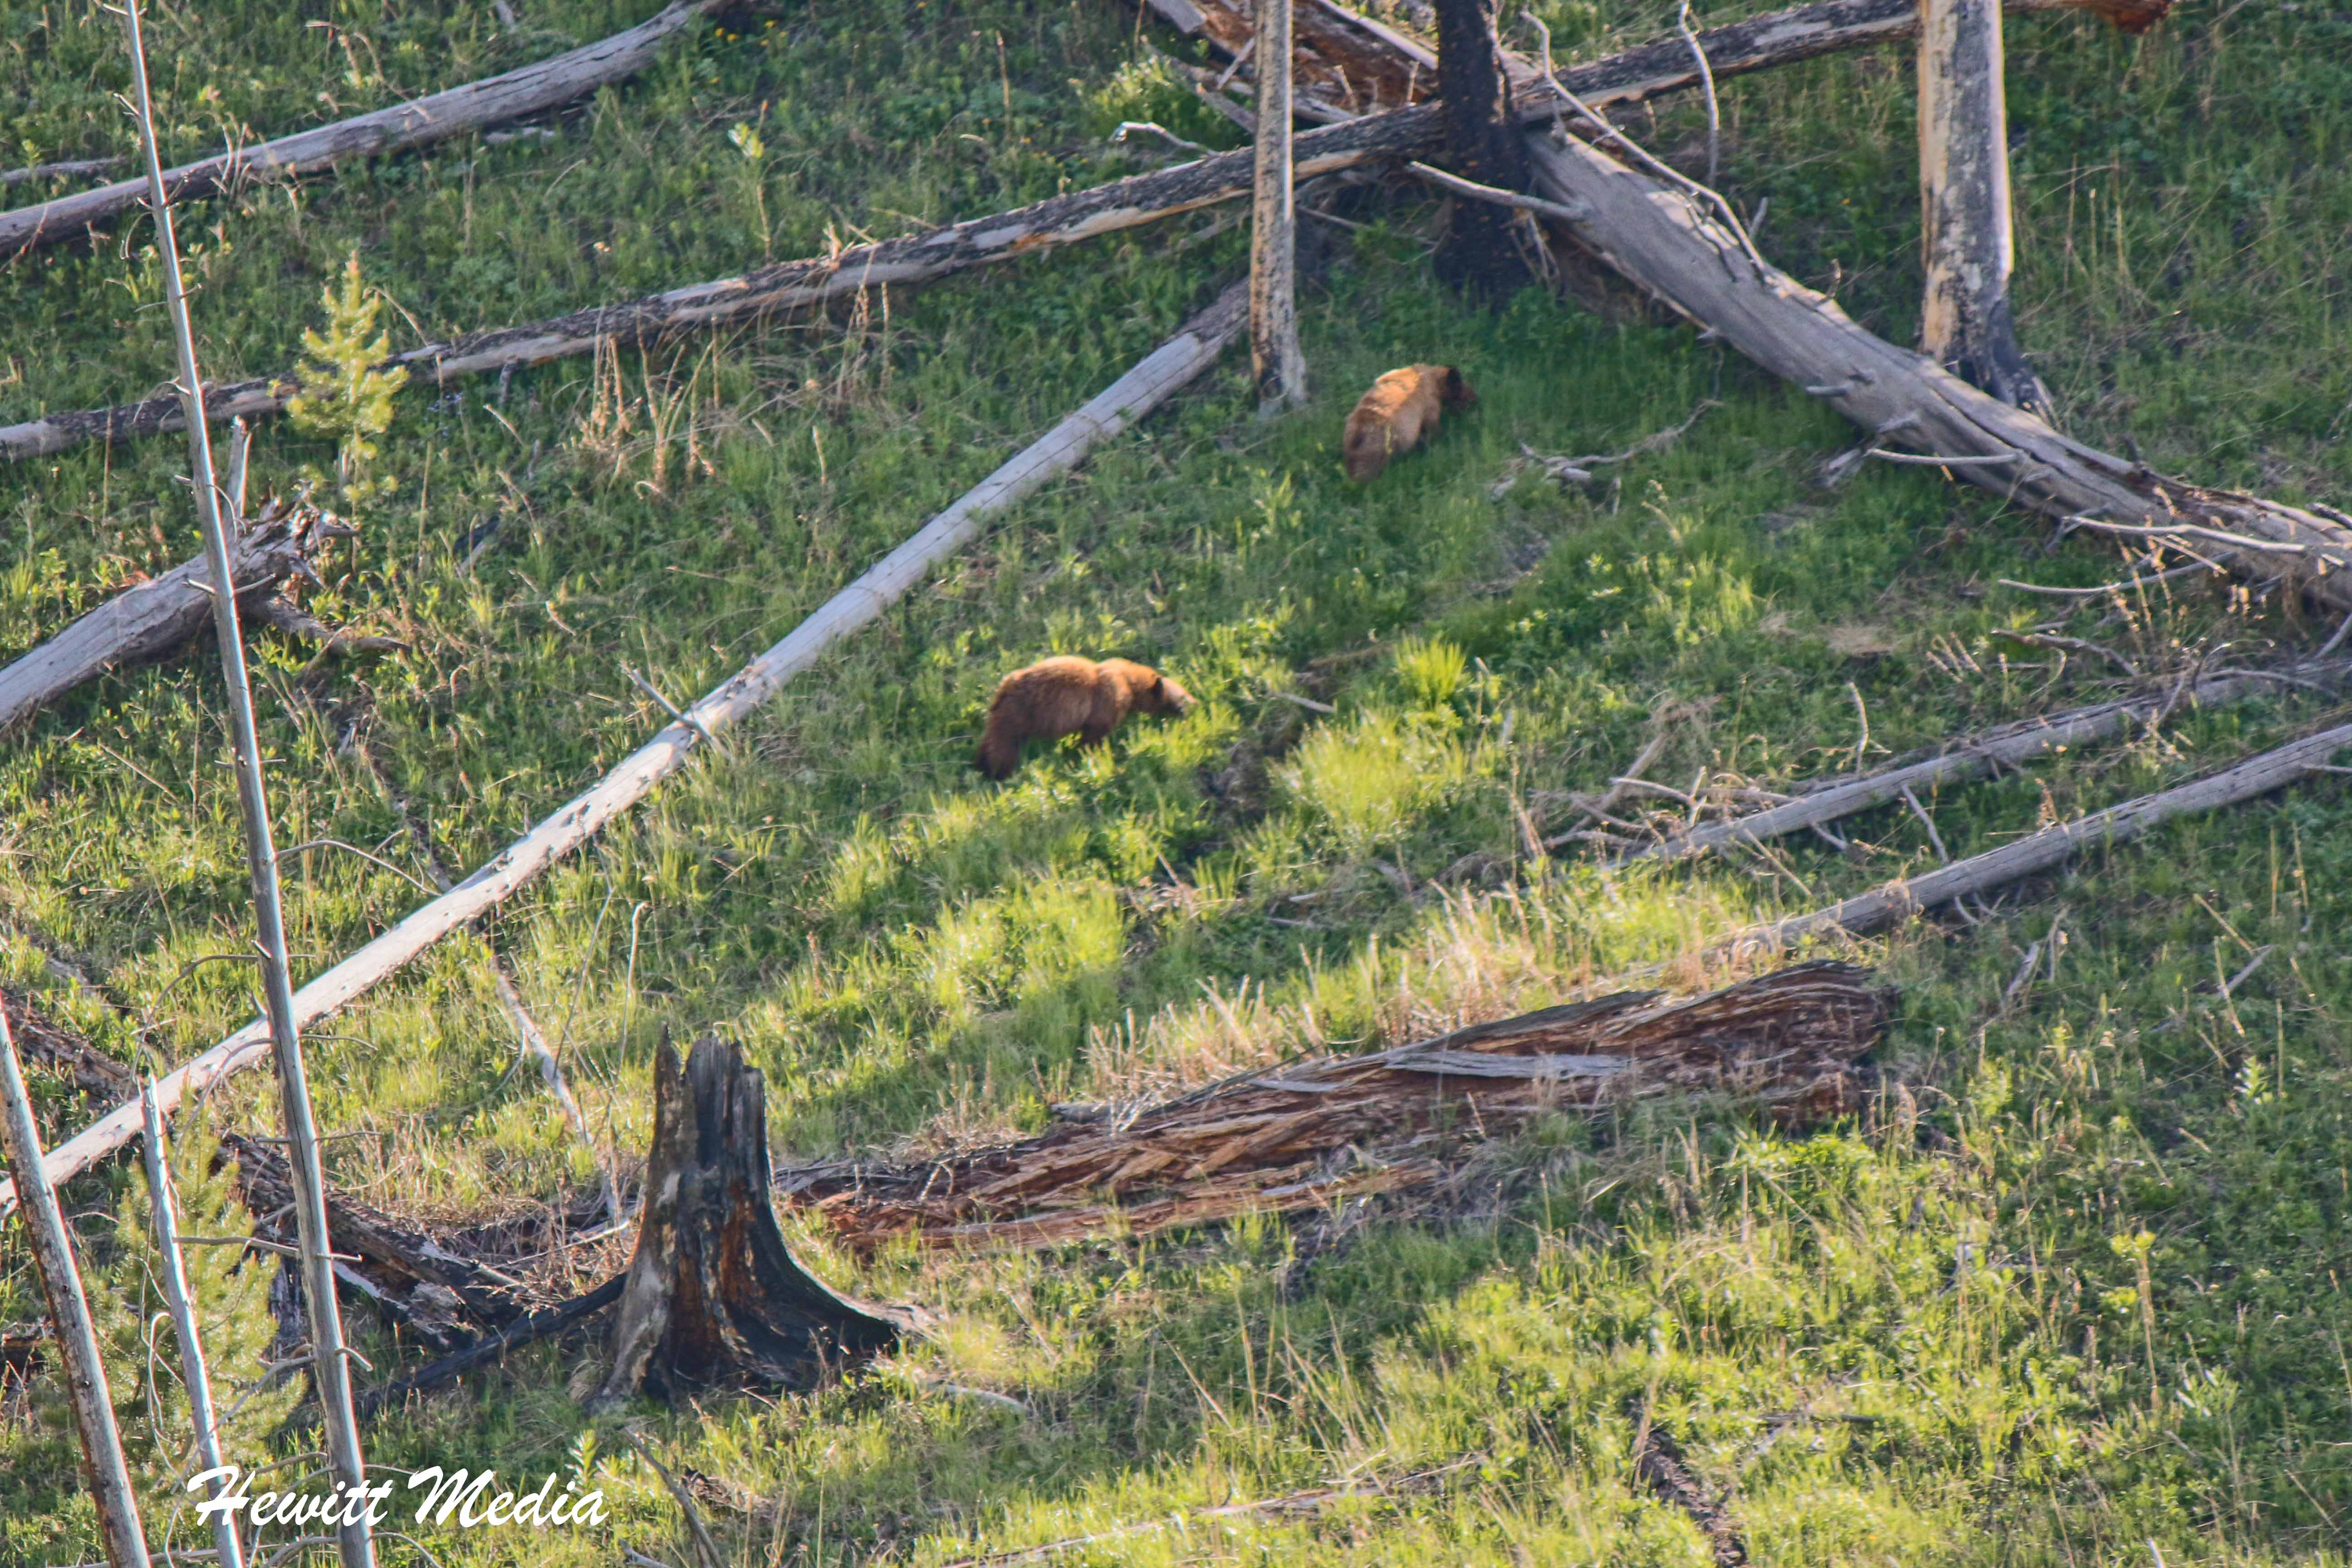 Black Bear with cubs in Yellowstone